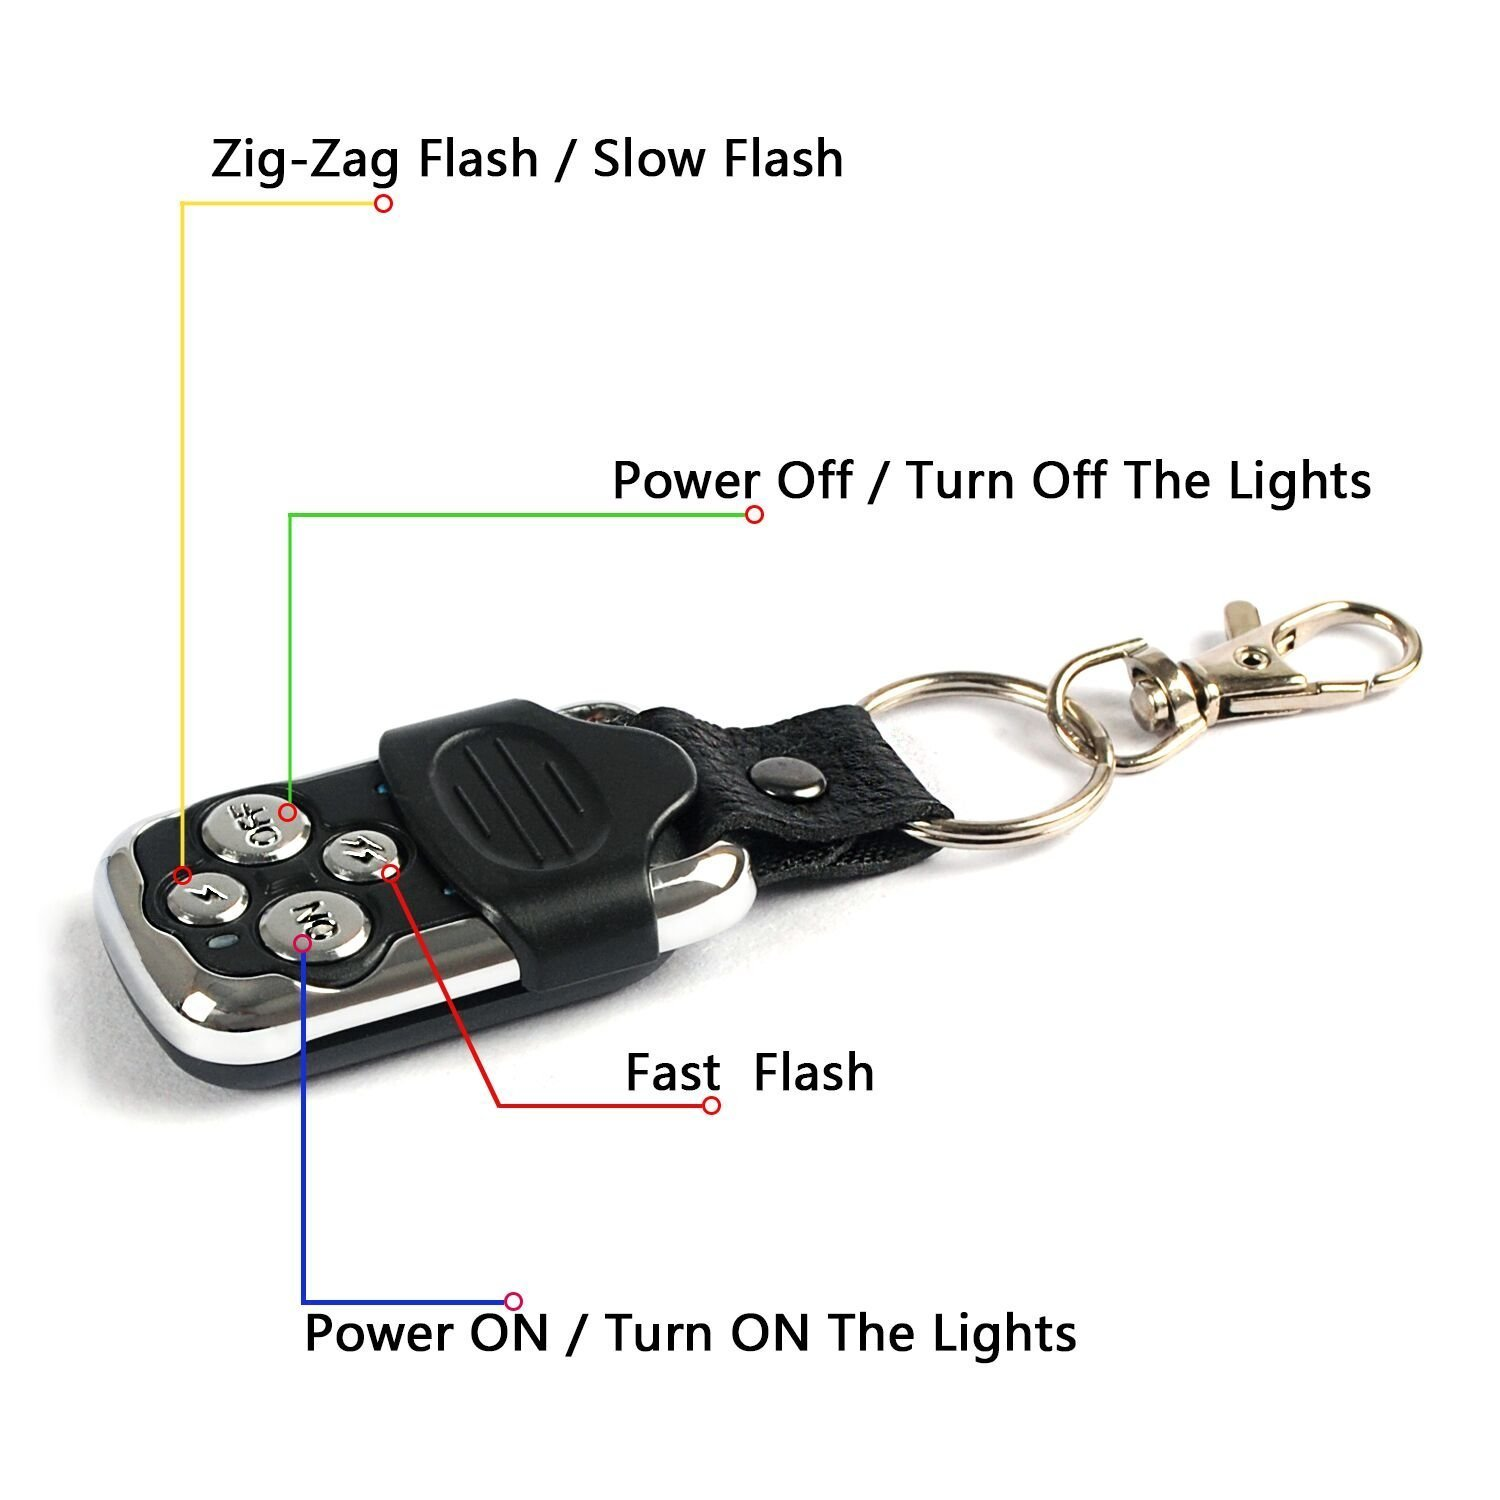 Somaer Led Light Bar Remote Control Switch Wireless Controller Wiring A To Lights Transmitter Receiver On Off Strobe Flash Pulse For Harness Fog